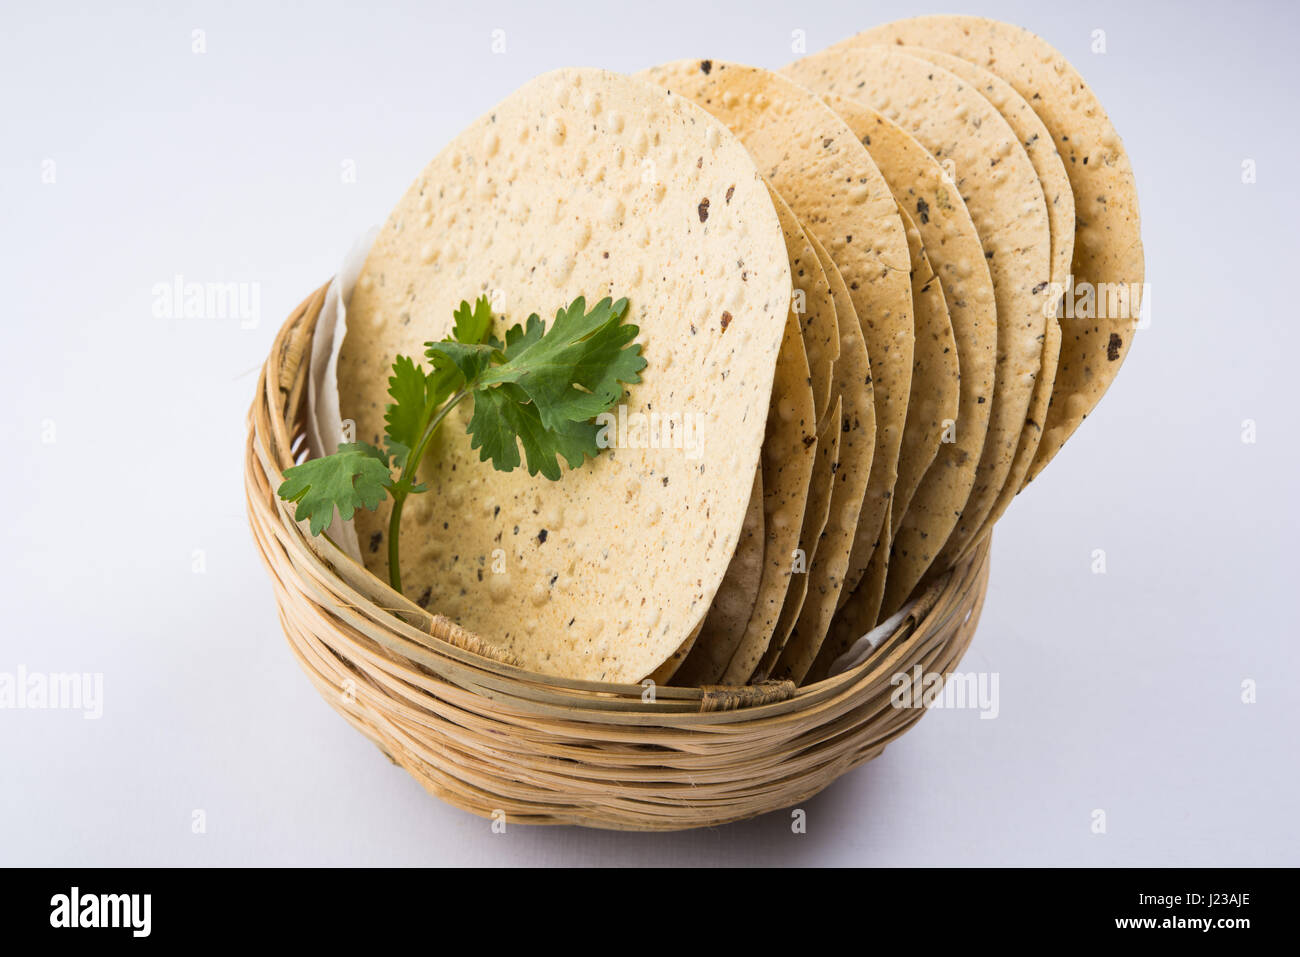 Indian snacks, deep fried crackers or papad. Mung dal and urad dal papad an Indian fried dish, which is an side - Stock Image